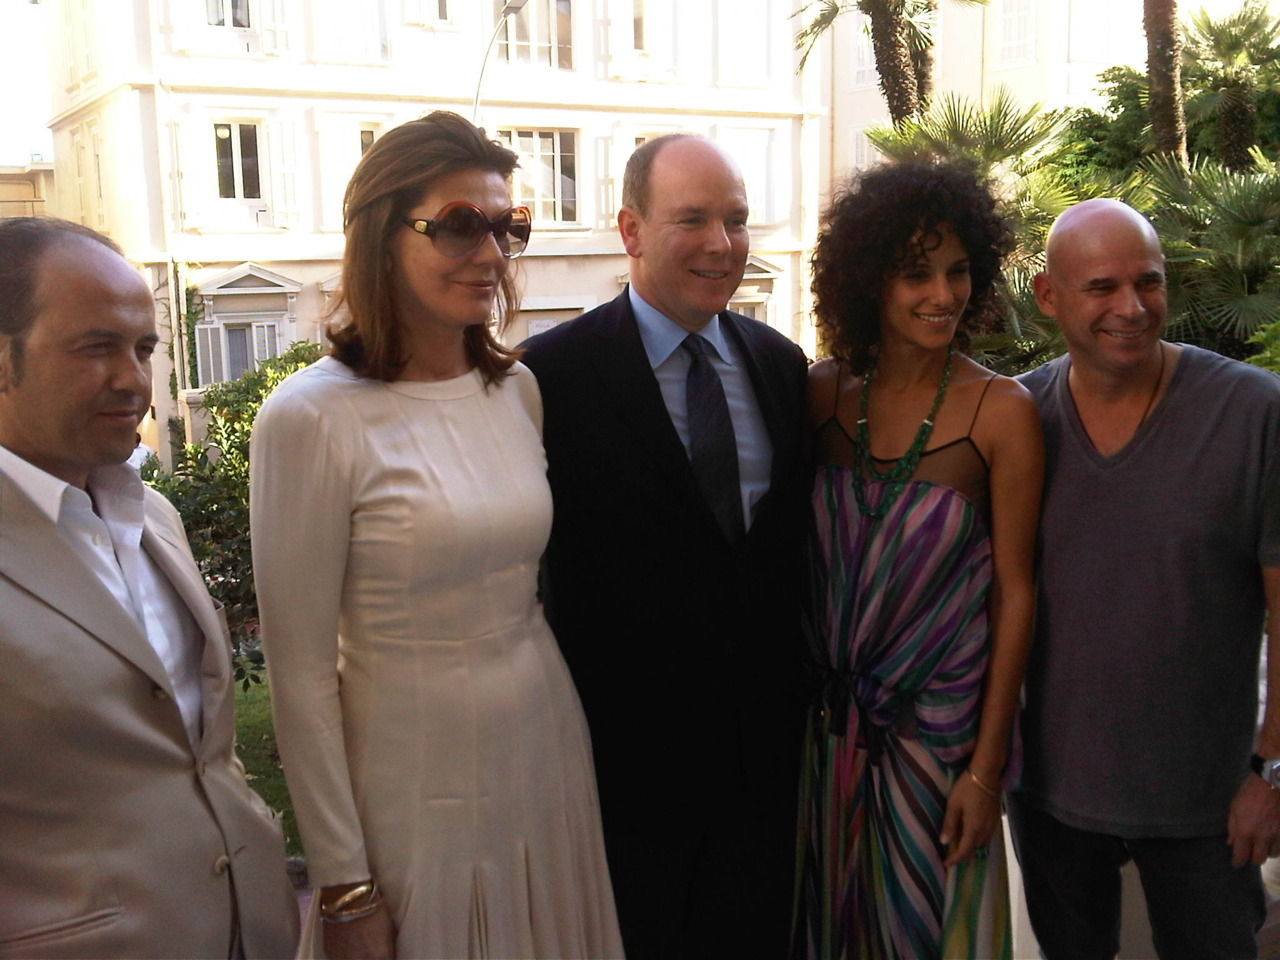 The beautiful launch of GAIA in Monaco with Prosper & Martine Assouline, Prince Albert, & Guy Laliberté.